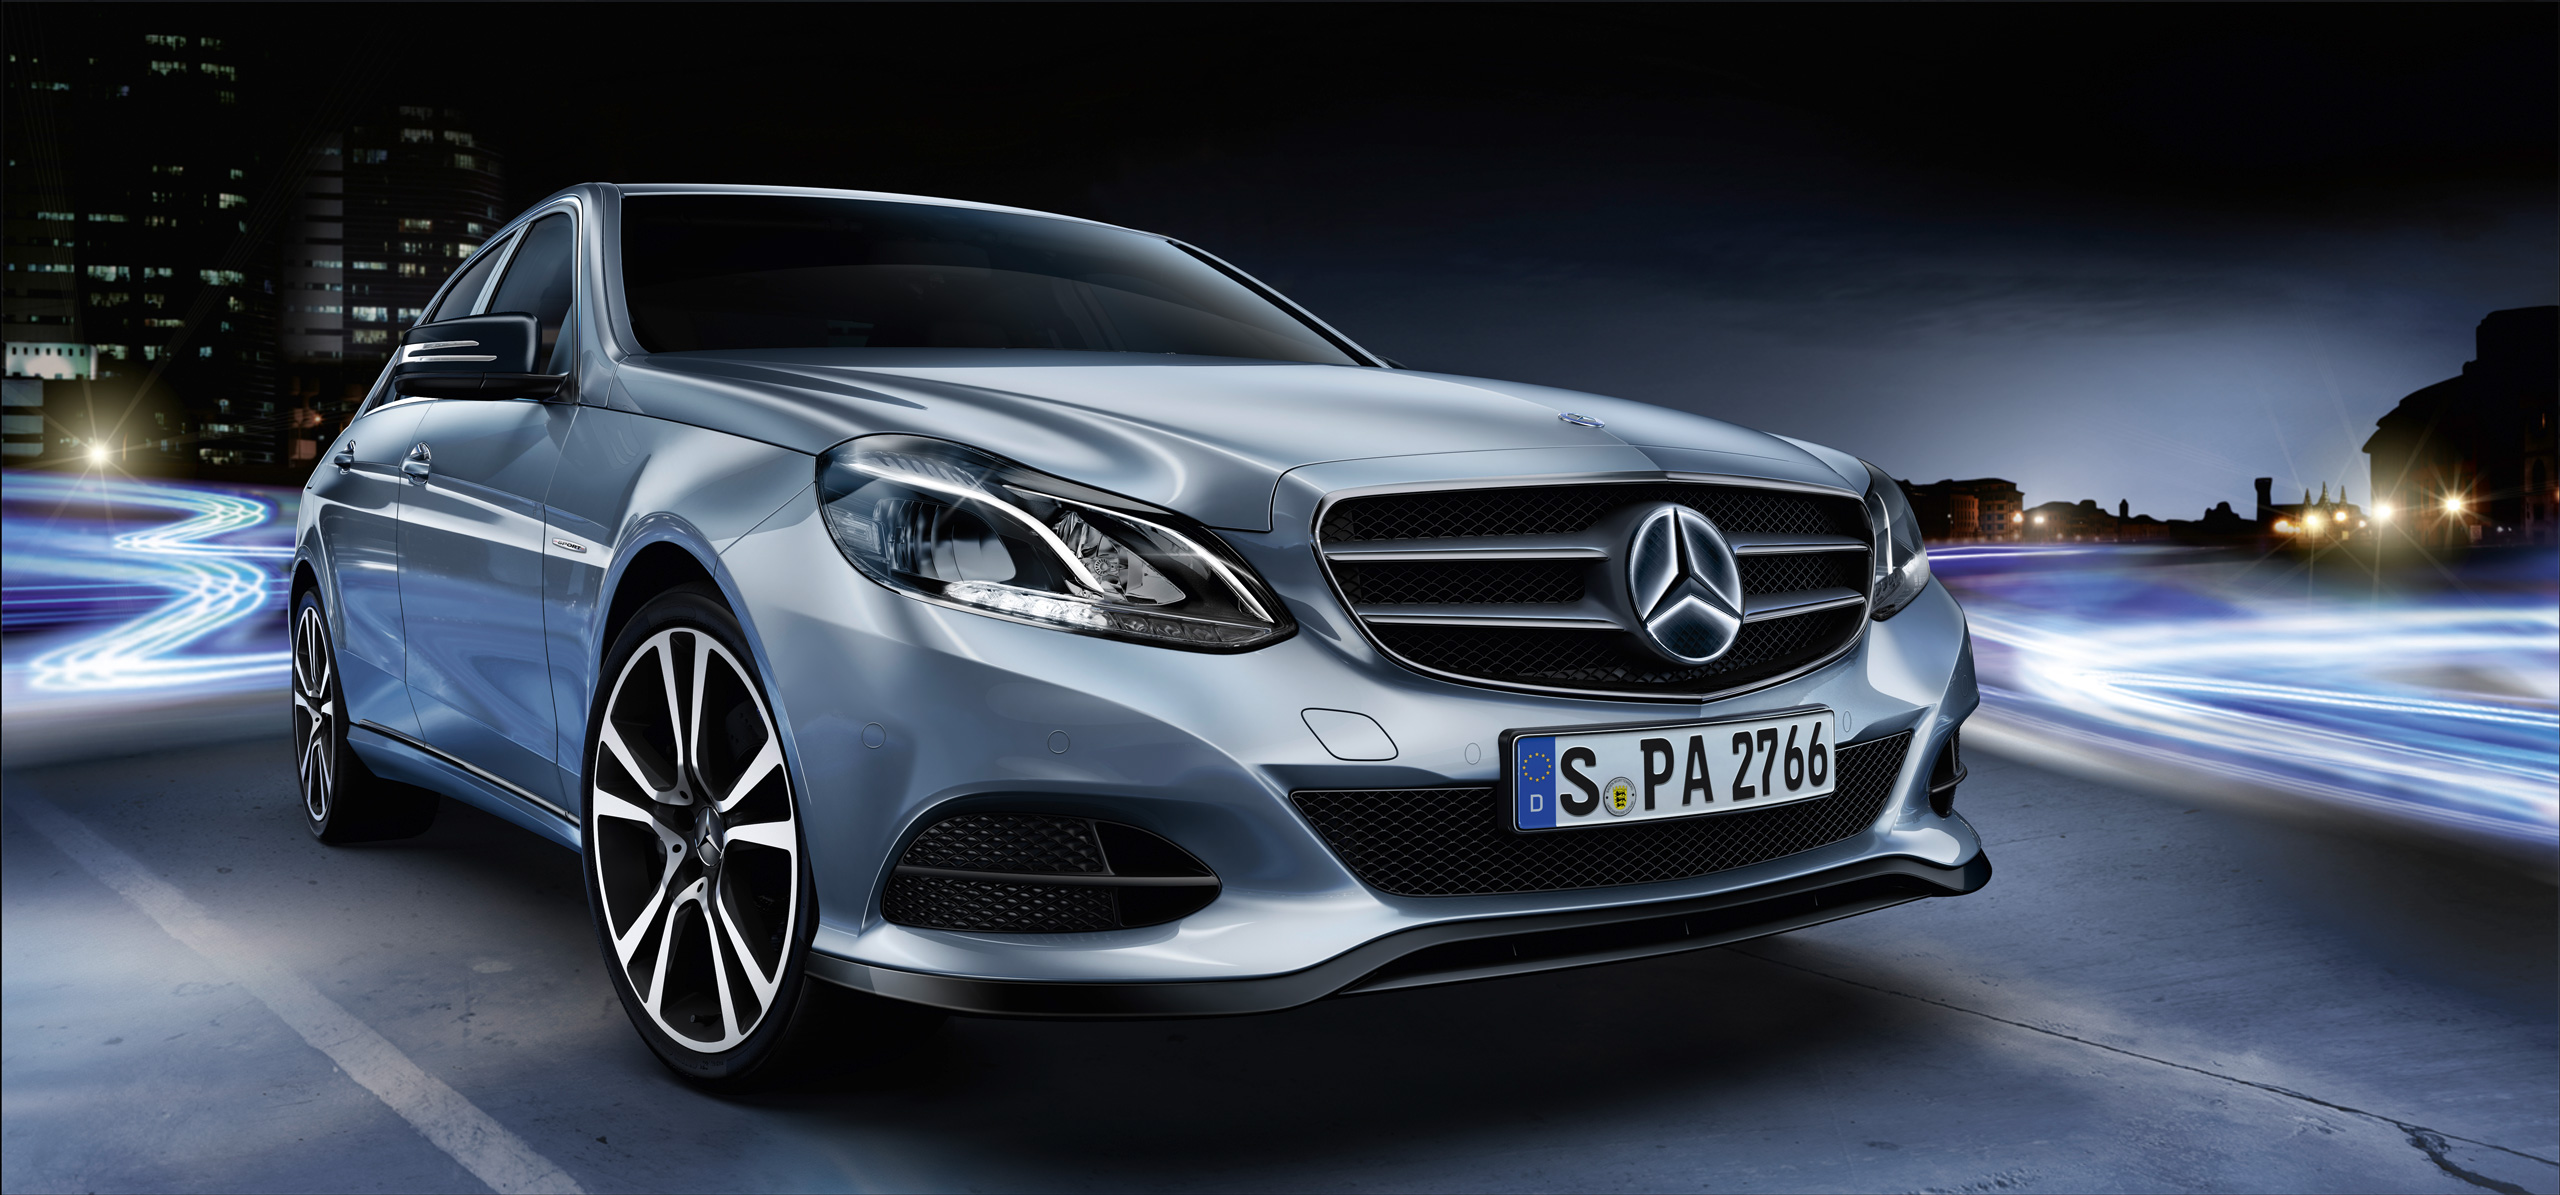 Official mercedes benz e class accessories released image for Mercedes benz acc